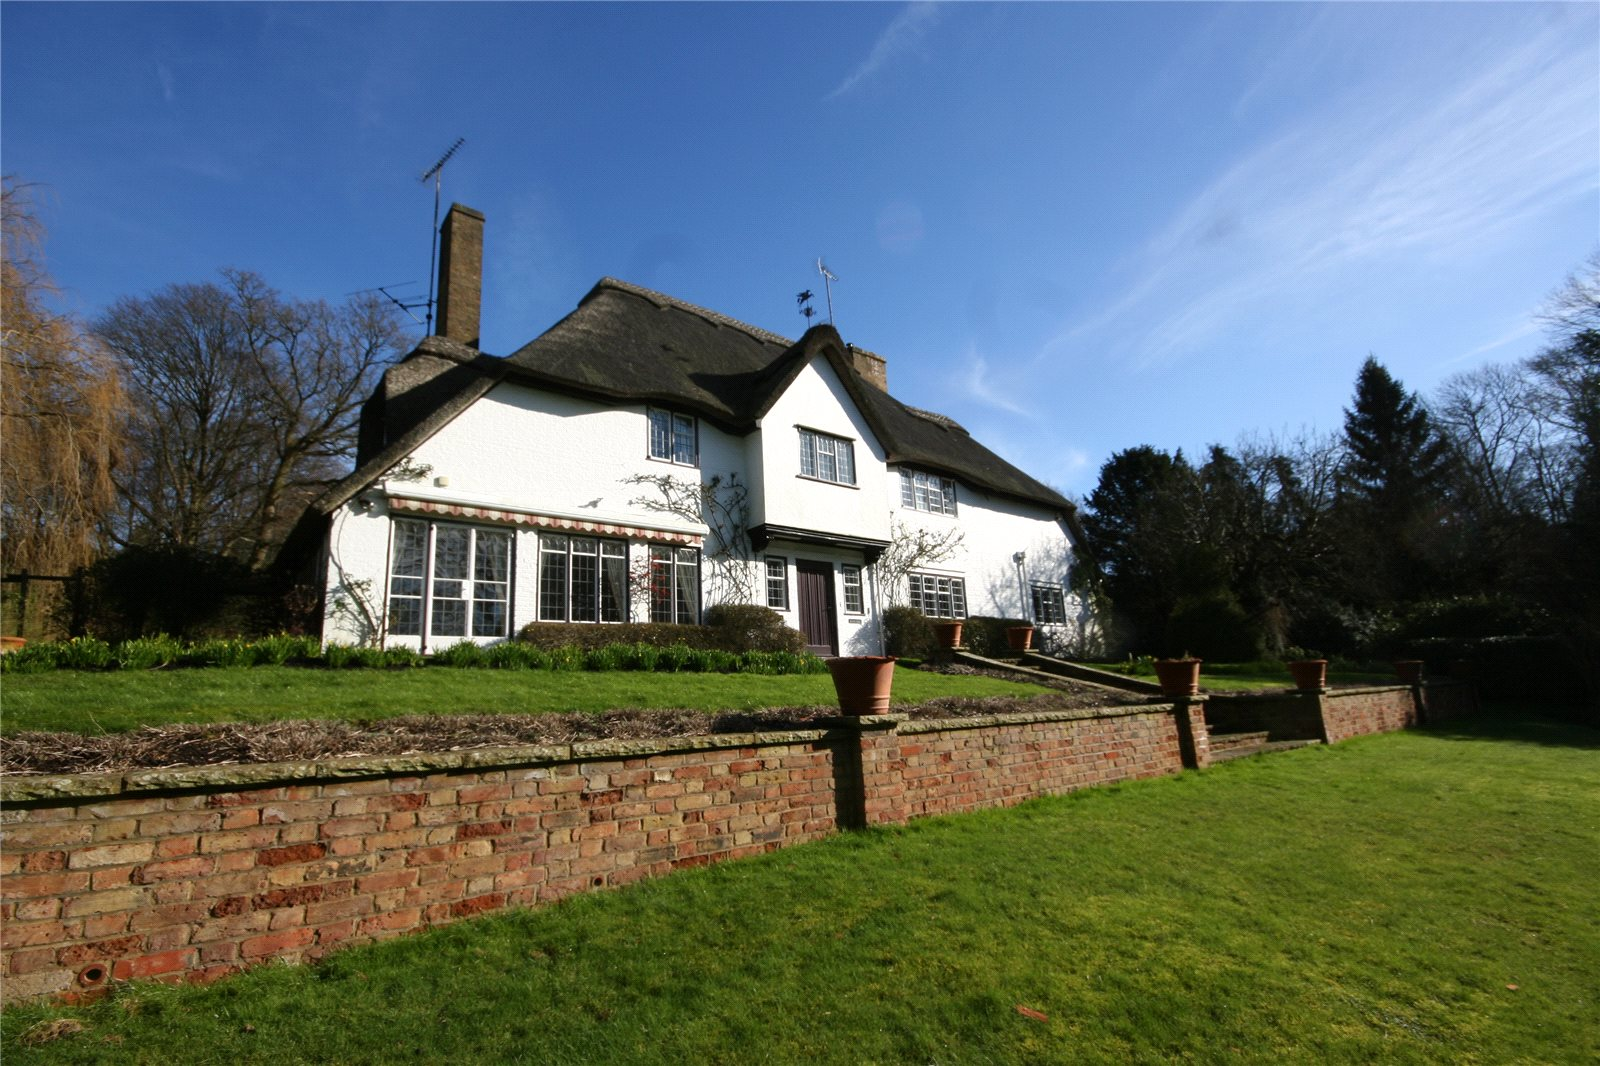 Single Family Home for Sale at Hedgerley Lane, Gerrards Cross, Buckinghamshire, SL9 Gerrards Cross, England